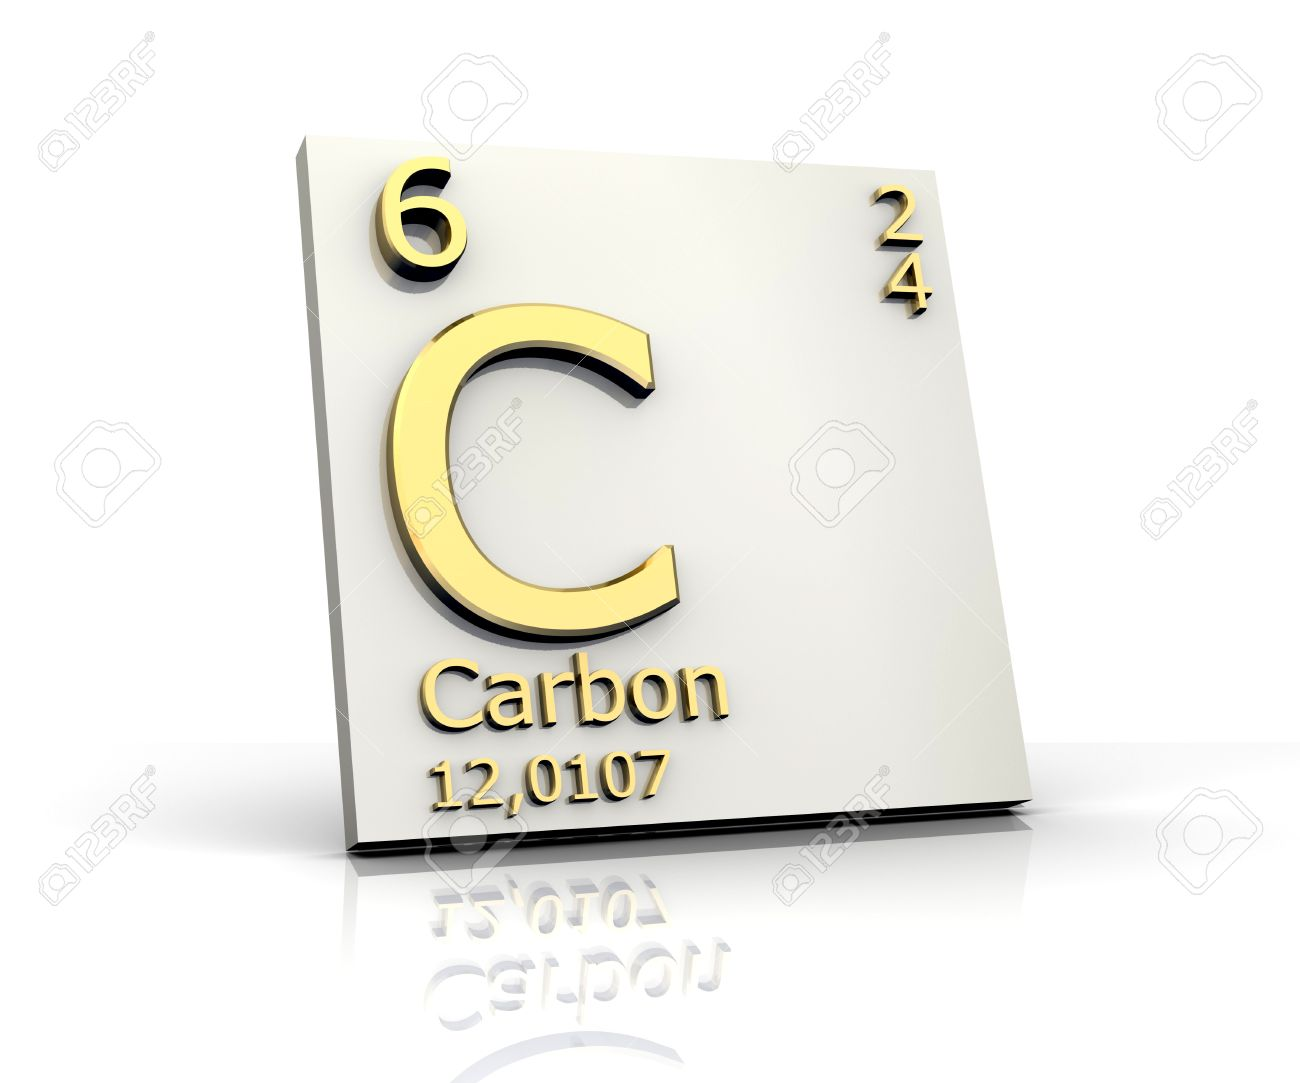 Carbon form periodic table of elements stock photo picture and carbon form periodic table of elements stock photo 4296425 urtaz Images